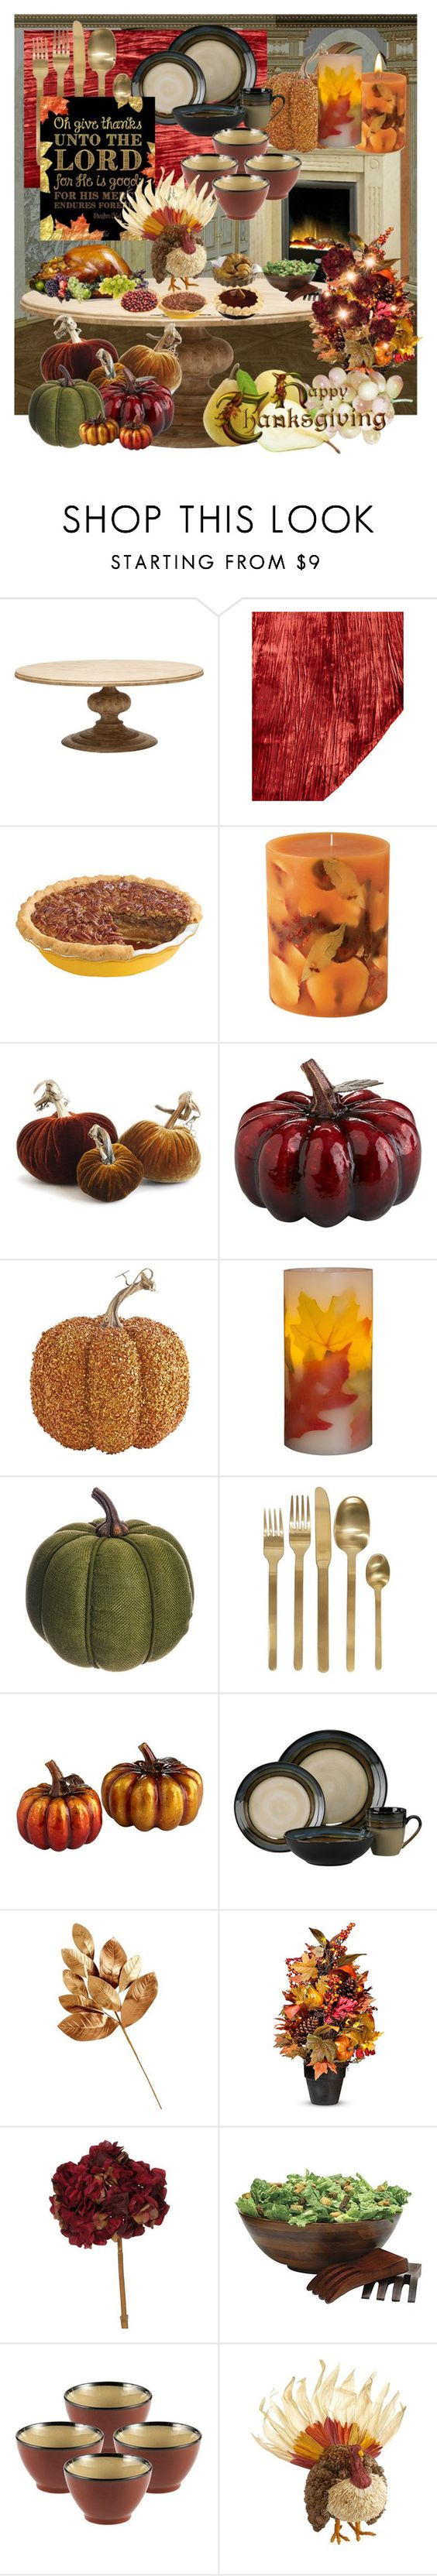 """""""Have a Happy and Blessed Thanksgiving Everyone!"""" by stephaniedsmigo ❤ liked on Polyvore featuring interior, interiors, interior design, home, home decor, interior decorating, Divine Designs, Rosy Rings, Dot & Bo and Allstate Floral"""